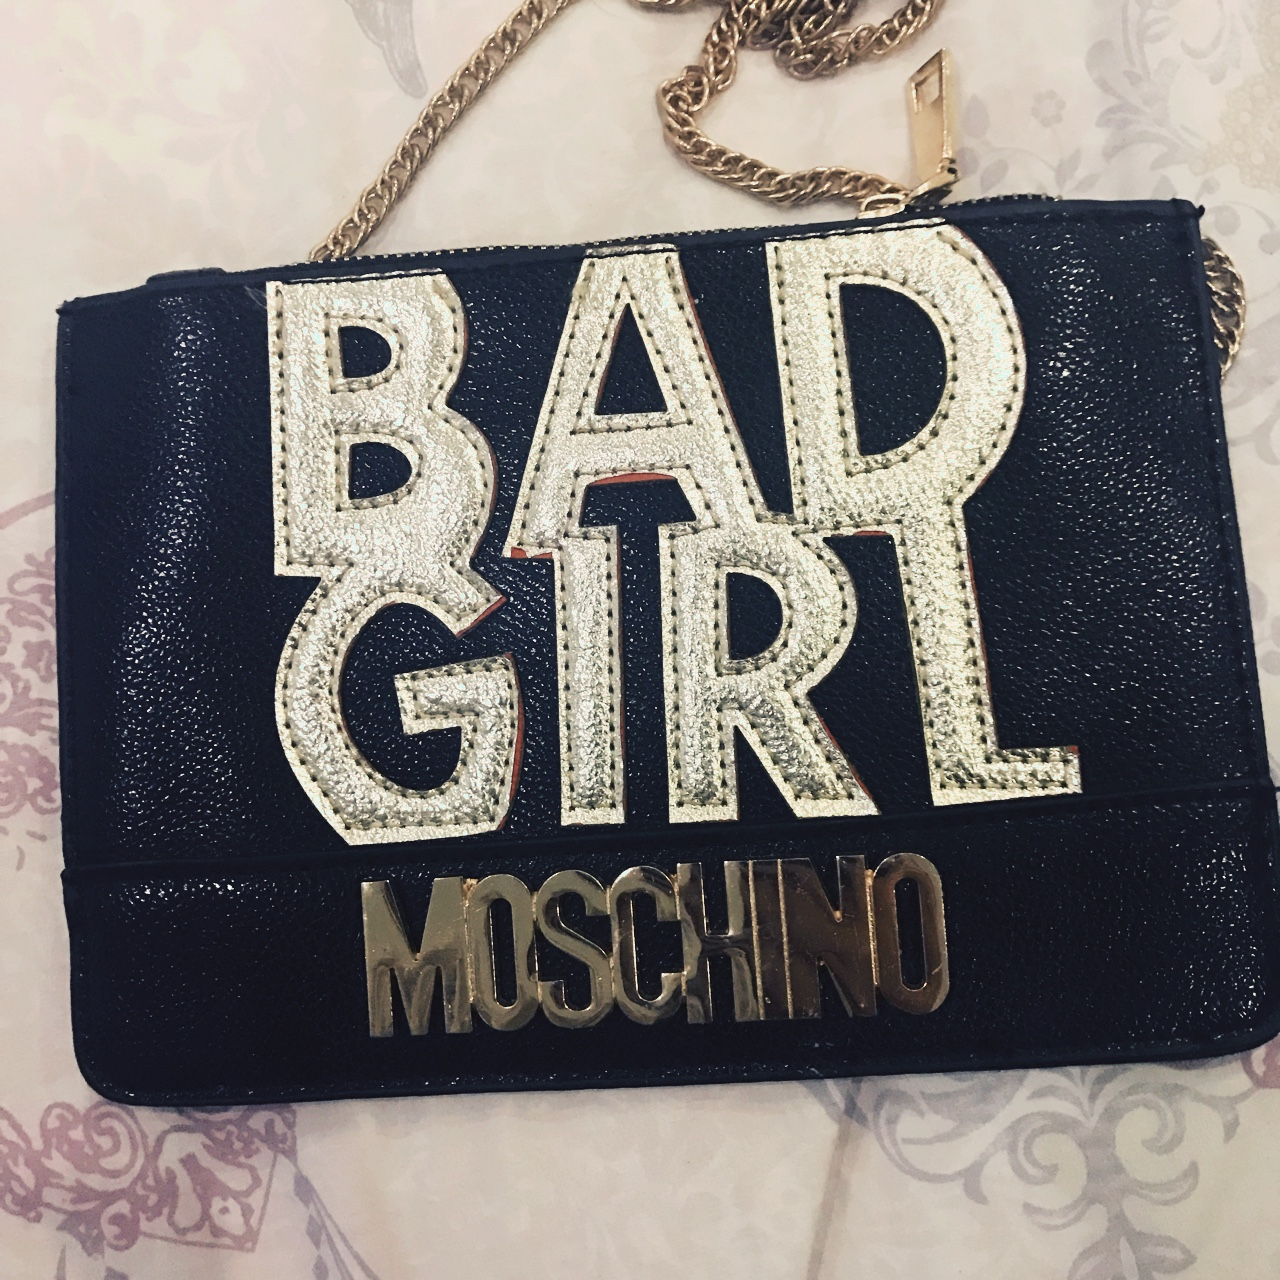 Moschino clutch bag or side bag. Black and gold. Depop